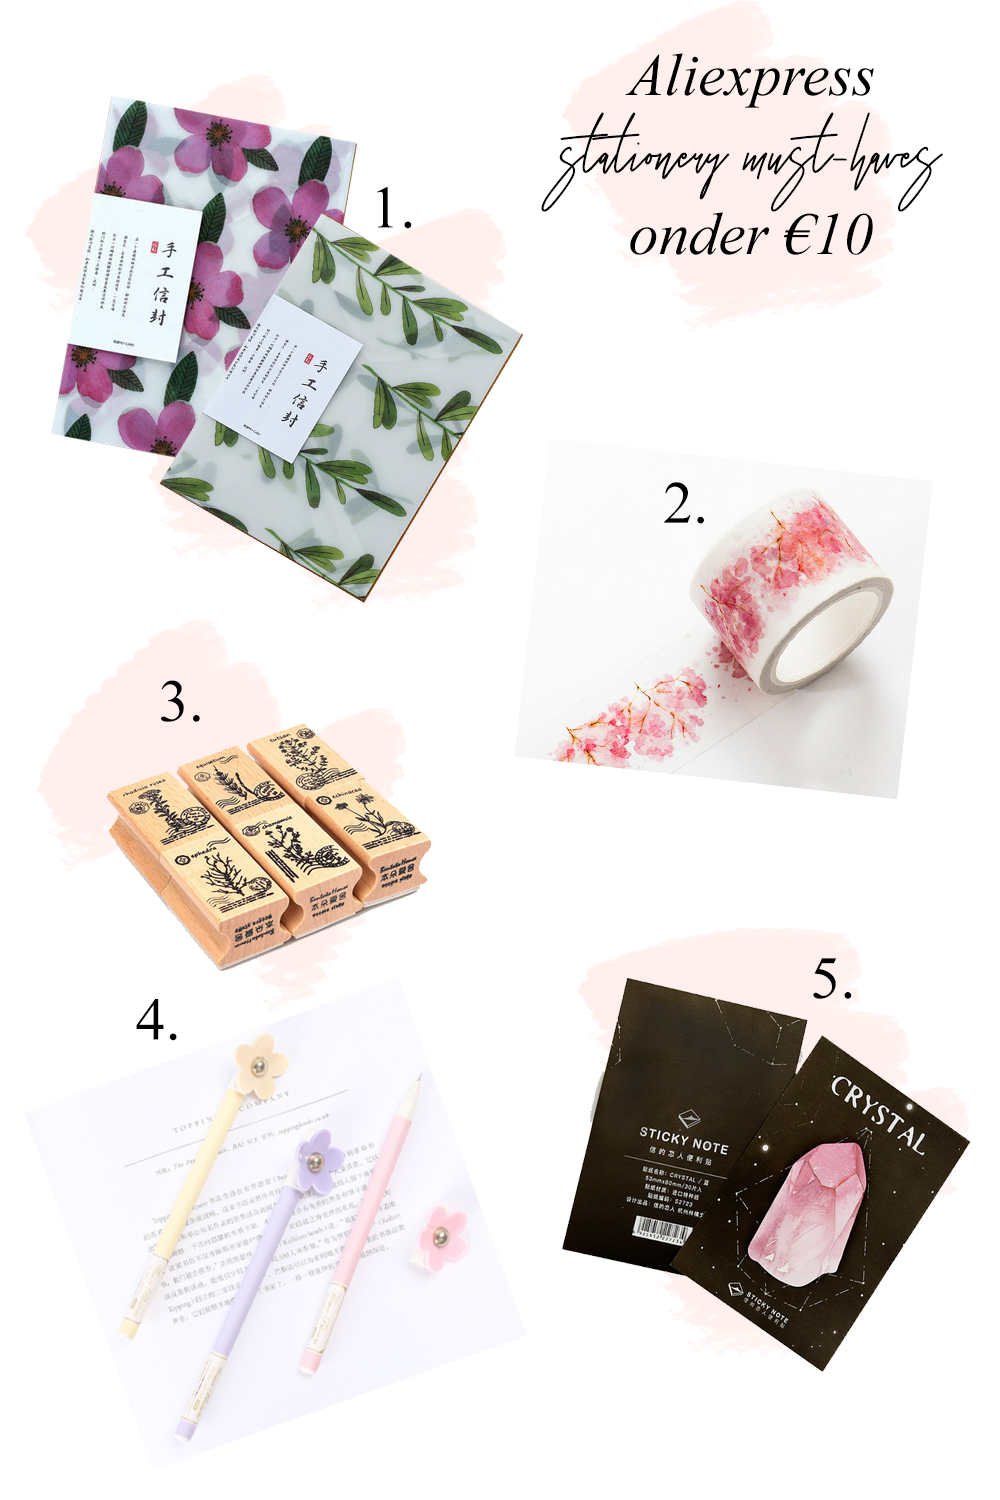 Aliexpress Stationery musthaves